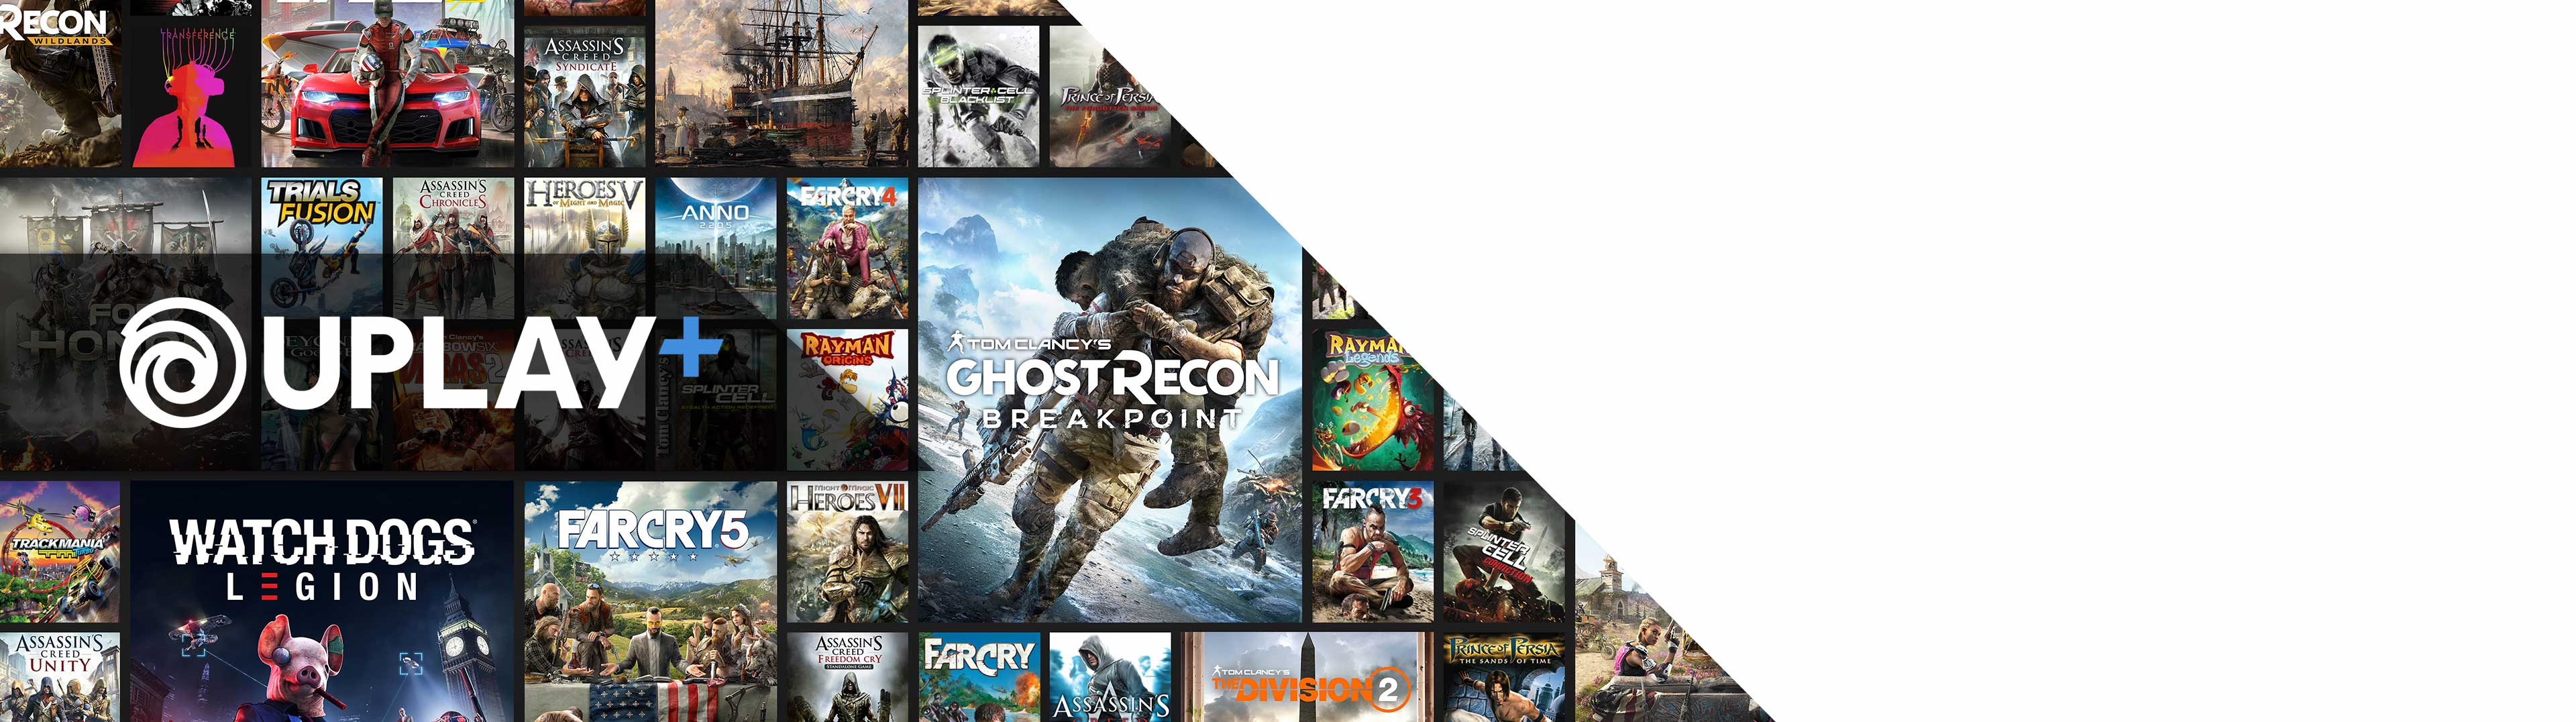 Get unlimited access to 100+ games on PC